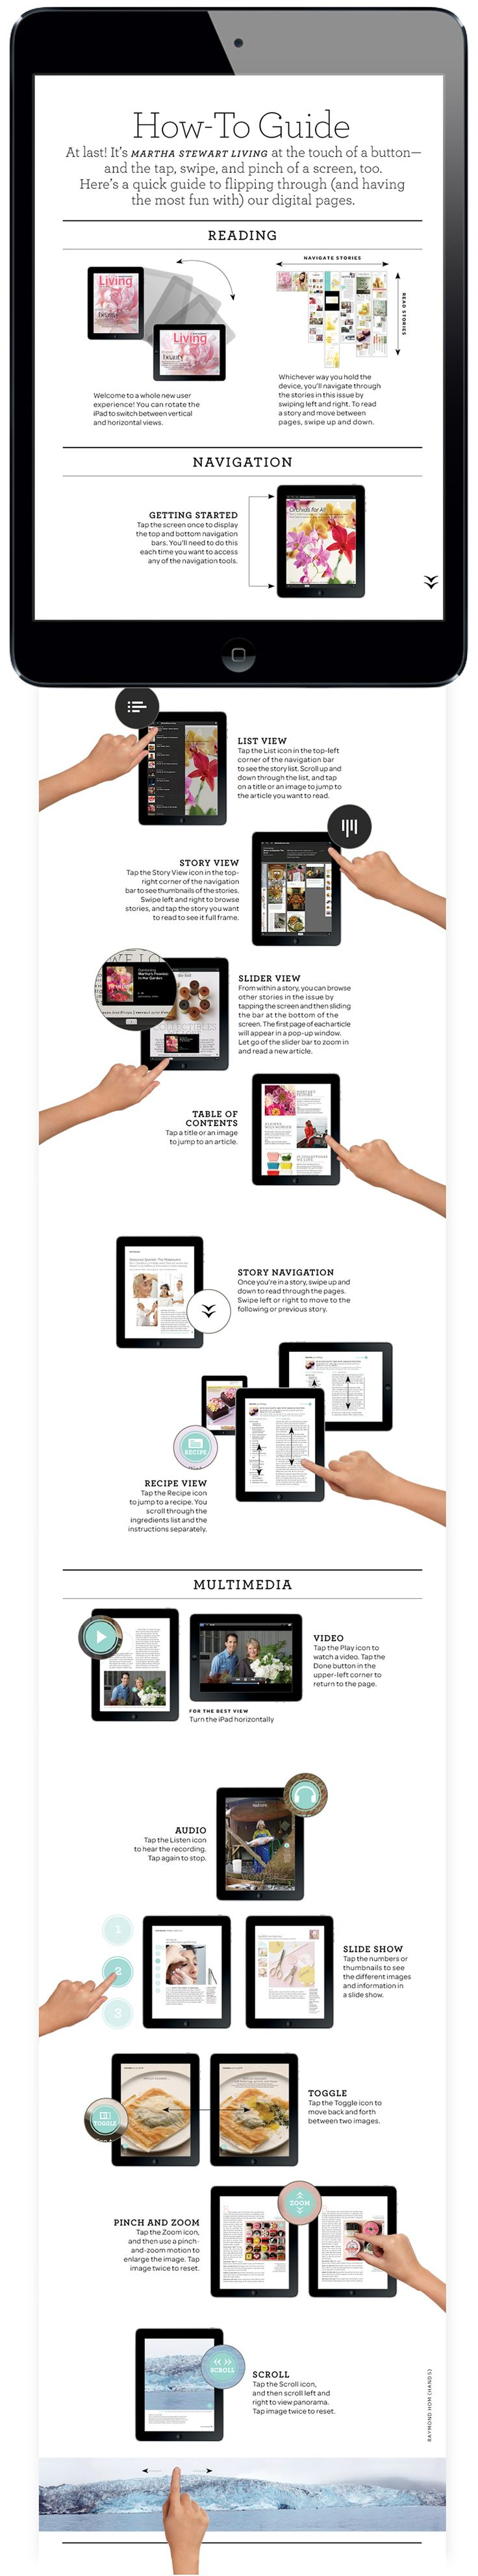 25 best ideas about tablet ui on pinterest ui design mobile app icon and ux ui designer. Black Bedroom Furniture Sets. Home Design Ideas